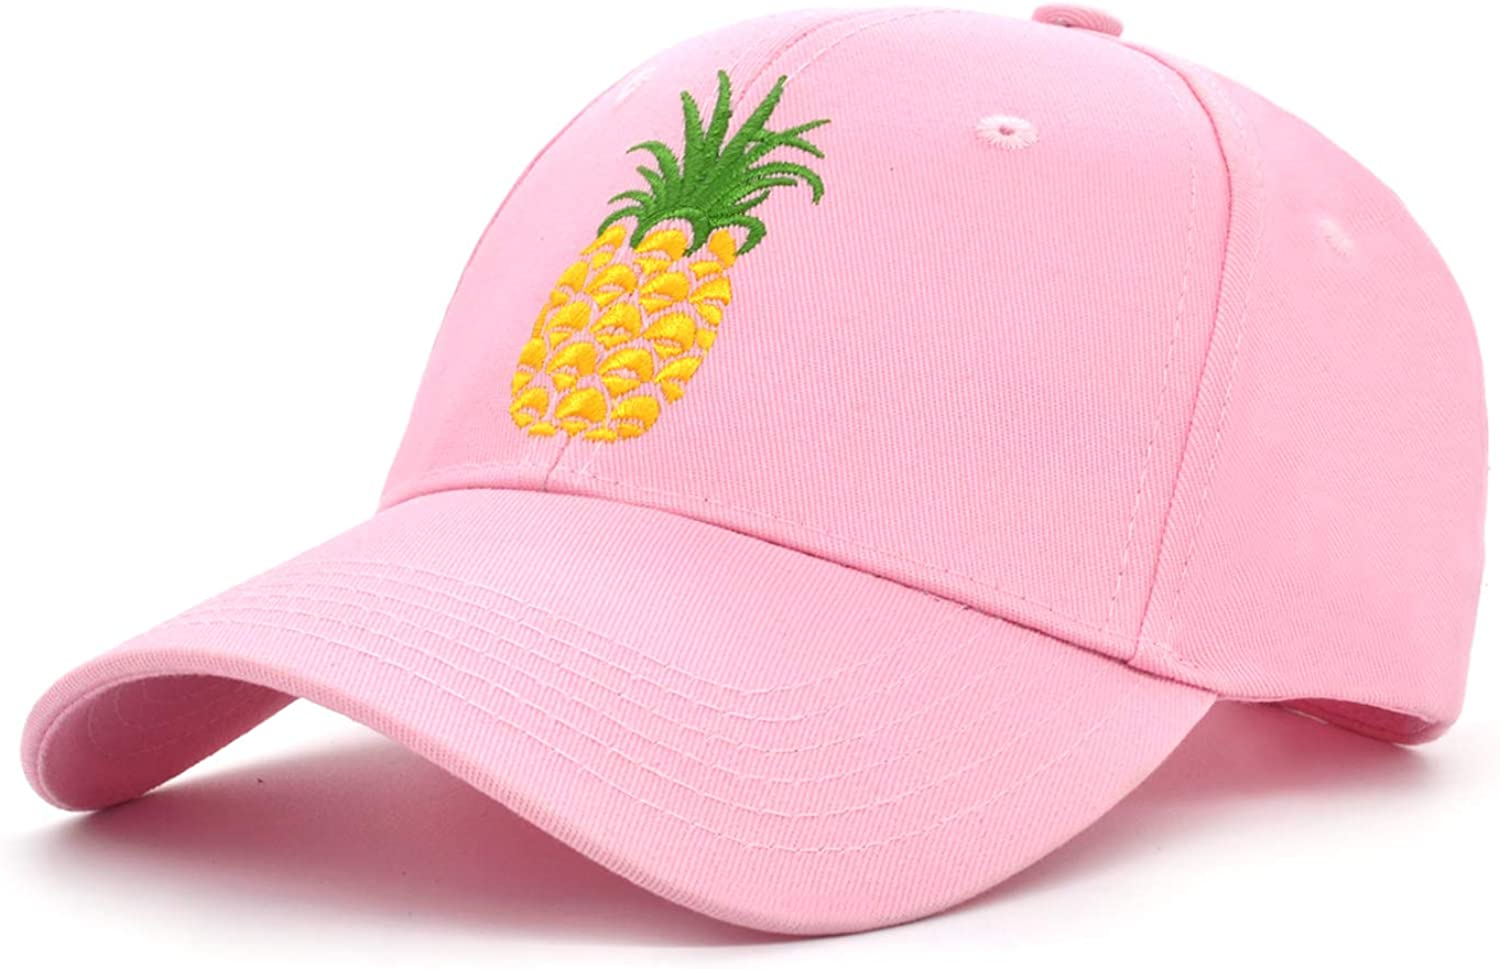 Pineapple Embroidered Baseball Cap Low Profile Cute Sun Hat Snapback Adjustable 100% Cotton Outdoor Sports Cap